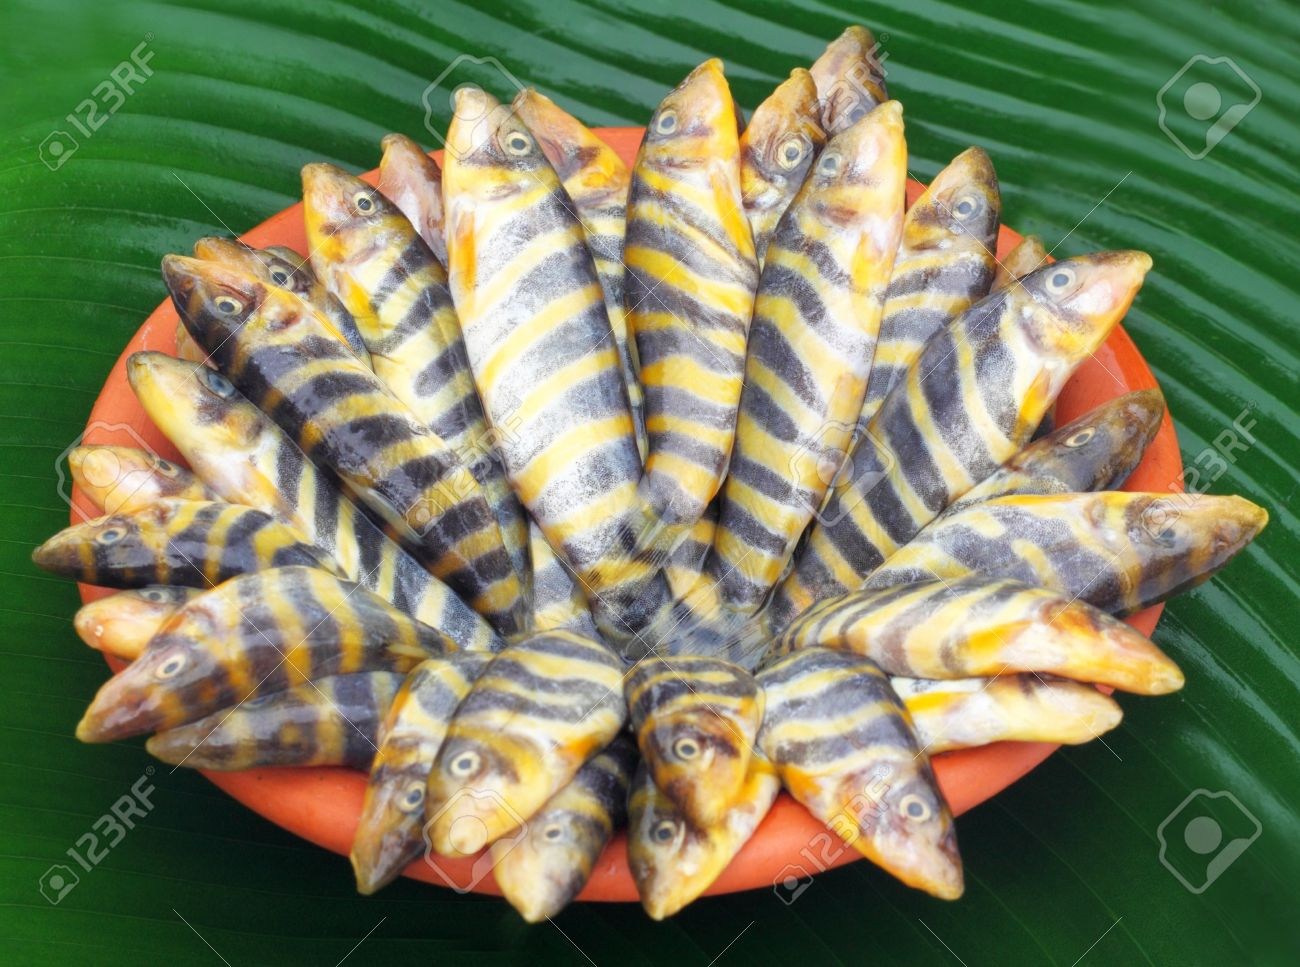 Botia Dario Or Rani Fish Of Indian Subcontinent Stock Photo Picture And Royalty Free Image Image 22006121